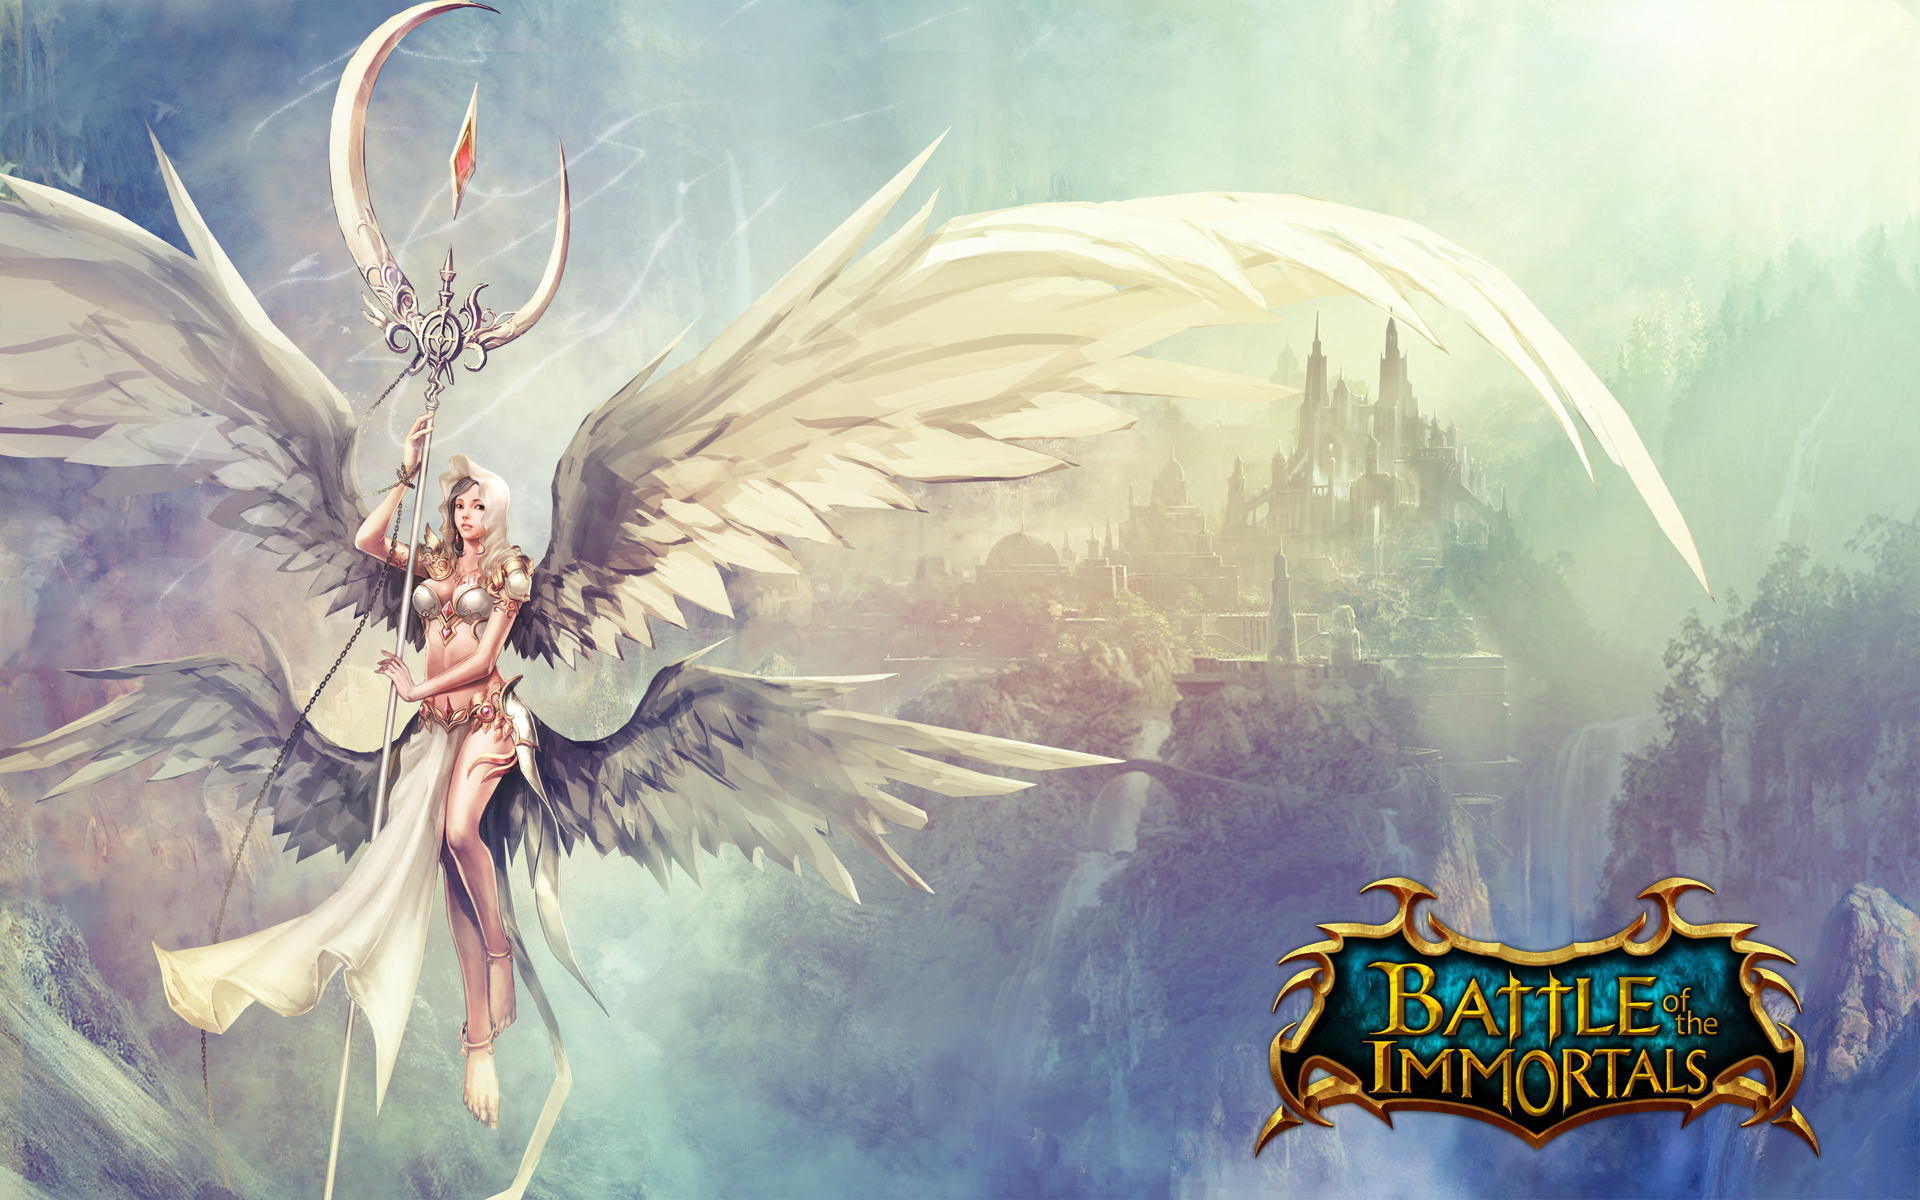 Battle of heroes: land of immortals for android download apk free.